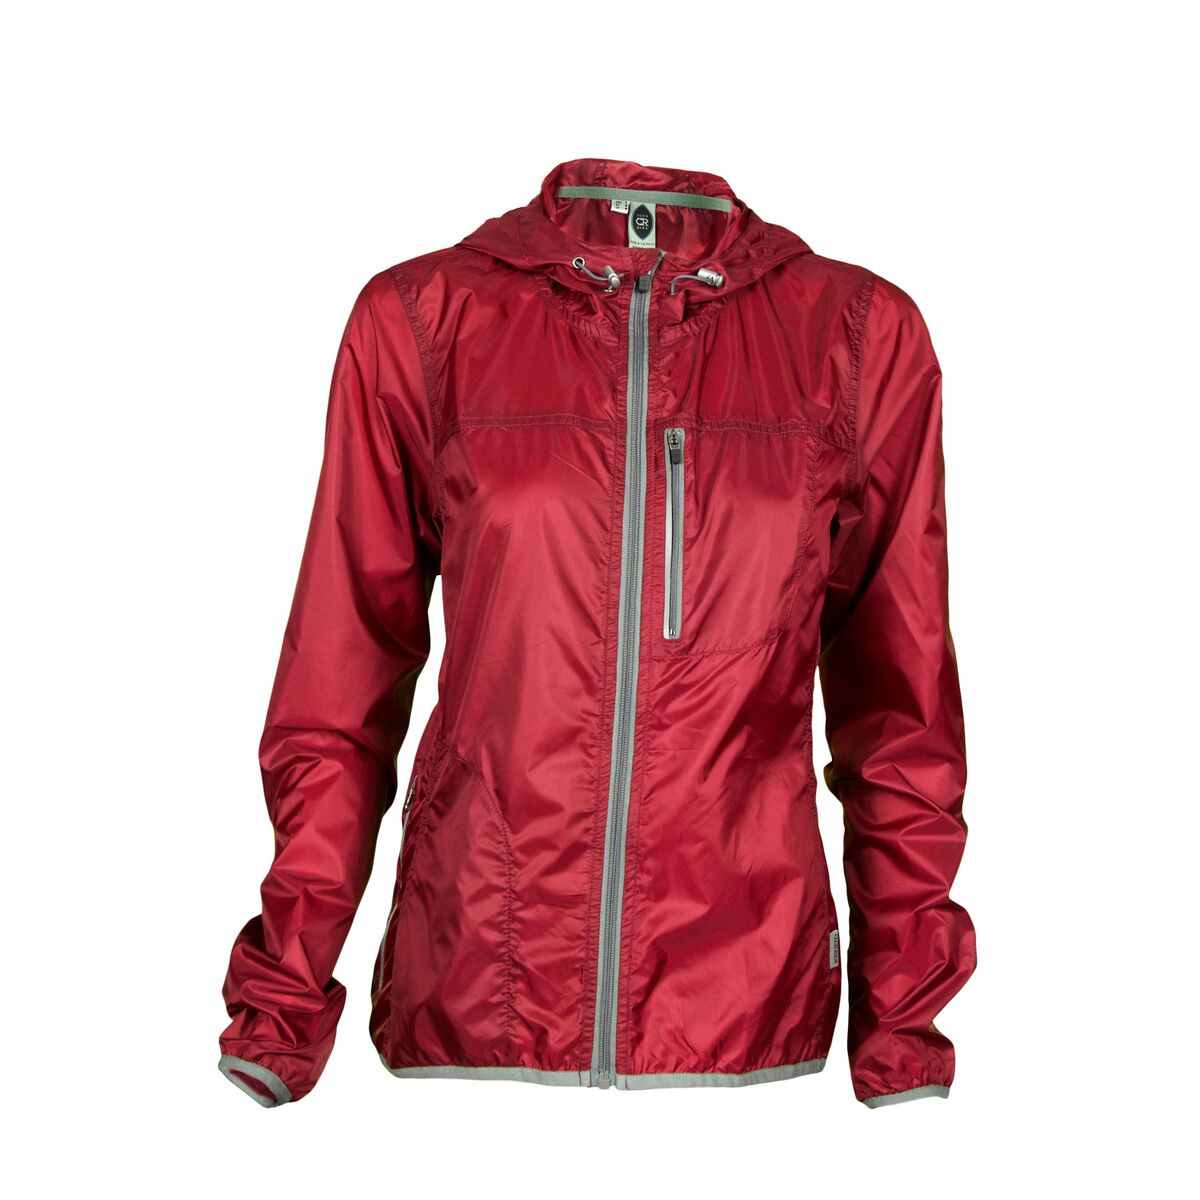 Club Ride 2015/16 Women's Cross Wind Cycling Jacket - WCCW302